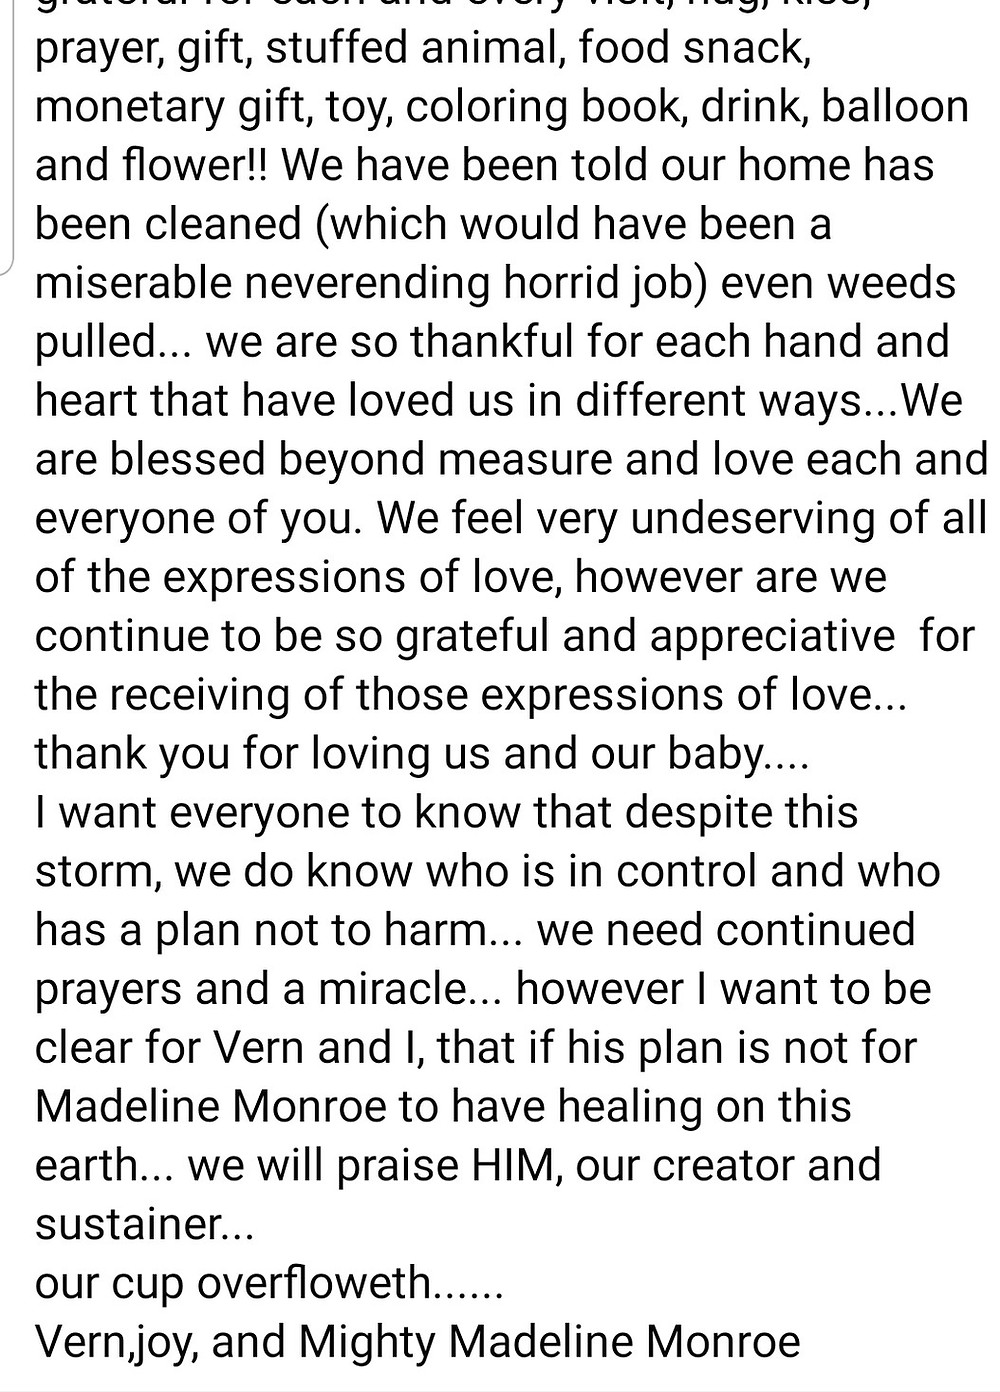 While we pray for a miracle for Mighty Madeline Monroe, let's help to lift her family up.